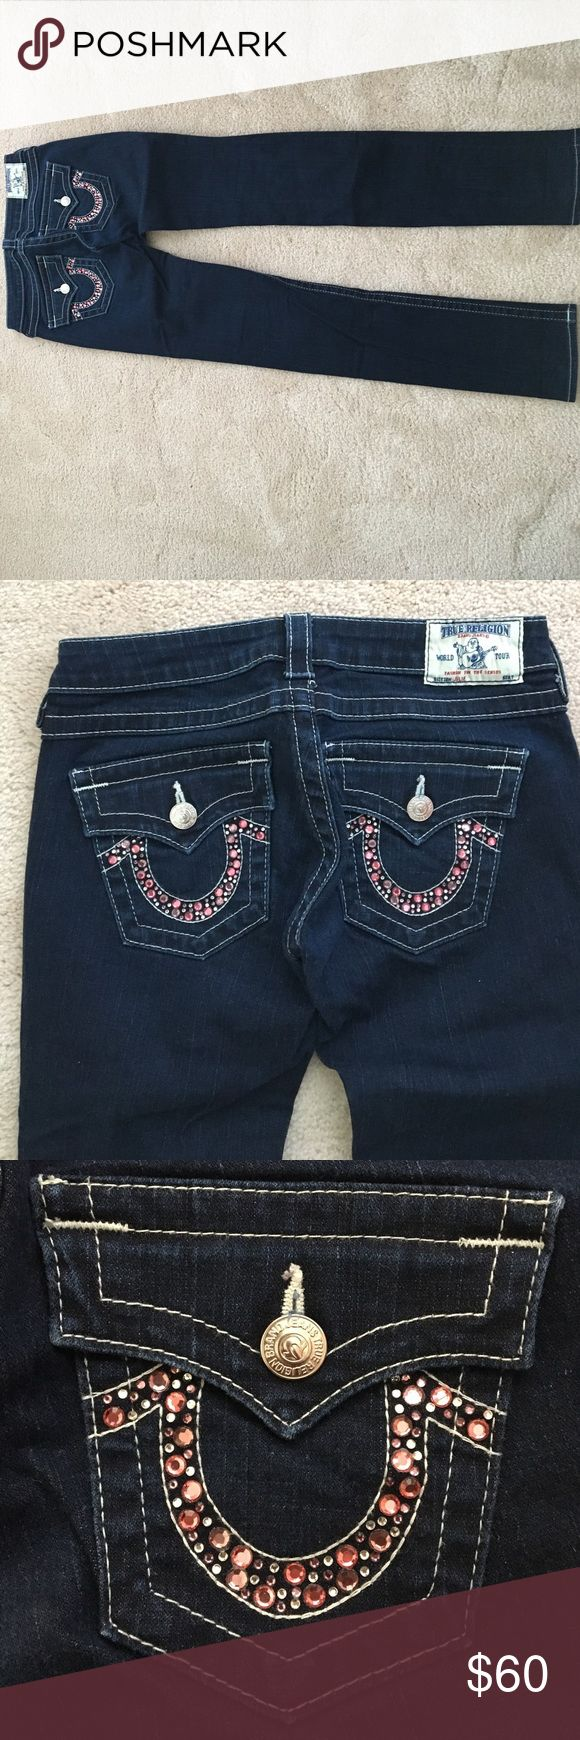 True Religion Skinny Jeans SHORT SALE! True Religion Skinny Julie Jeans with Pink and Purple Rhinestones on Back Pockets! These jeans were only worn twice and are good as new! True Religion Jeans Skinny